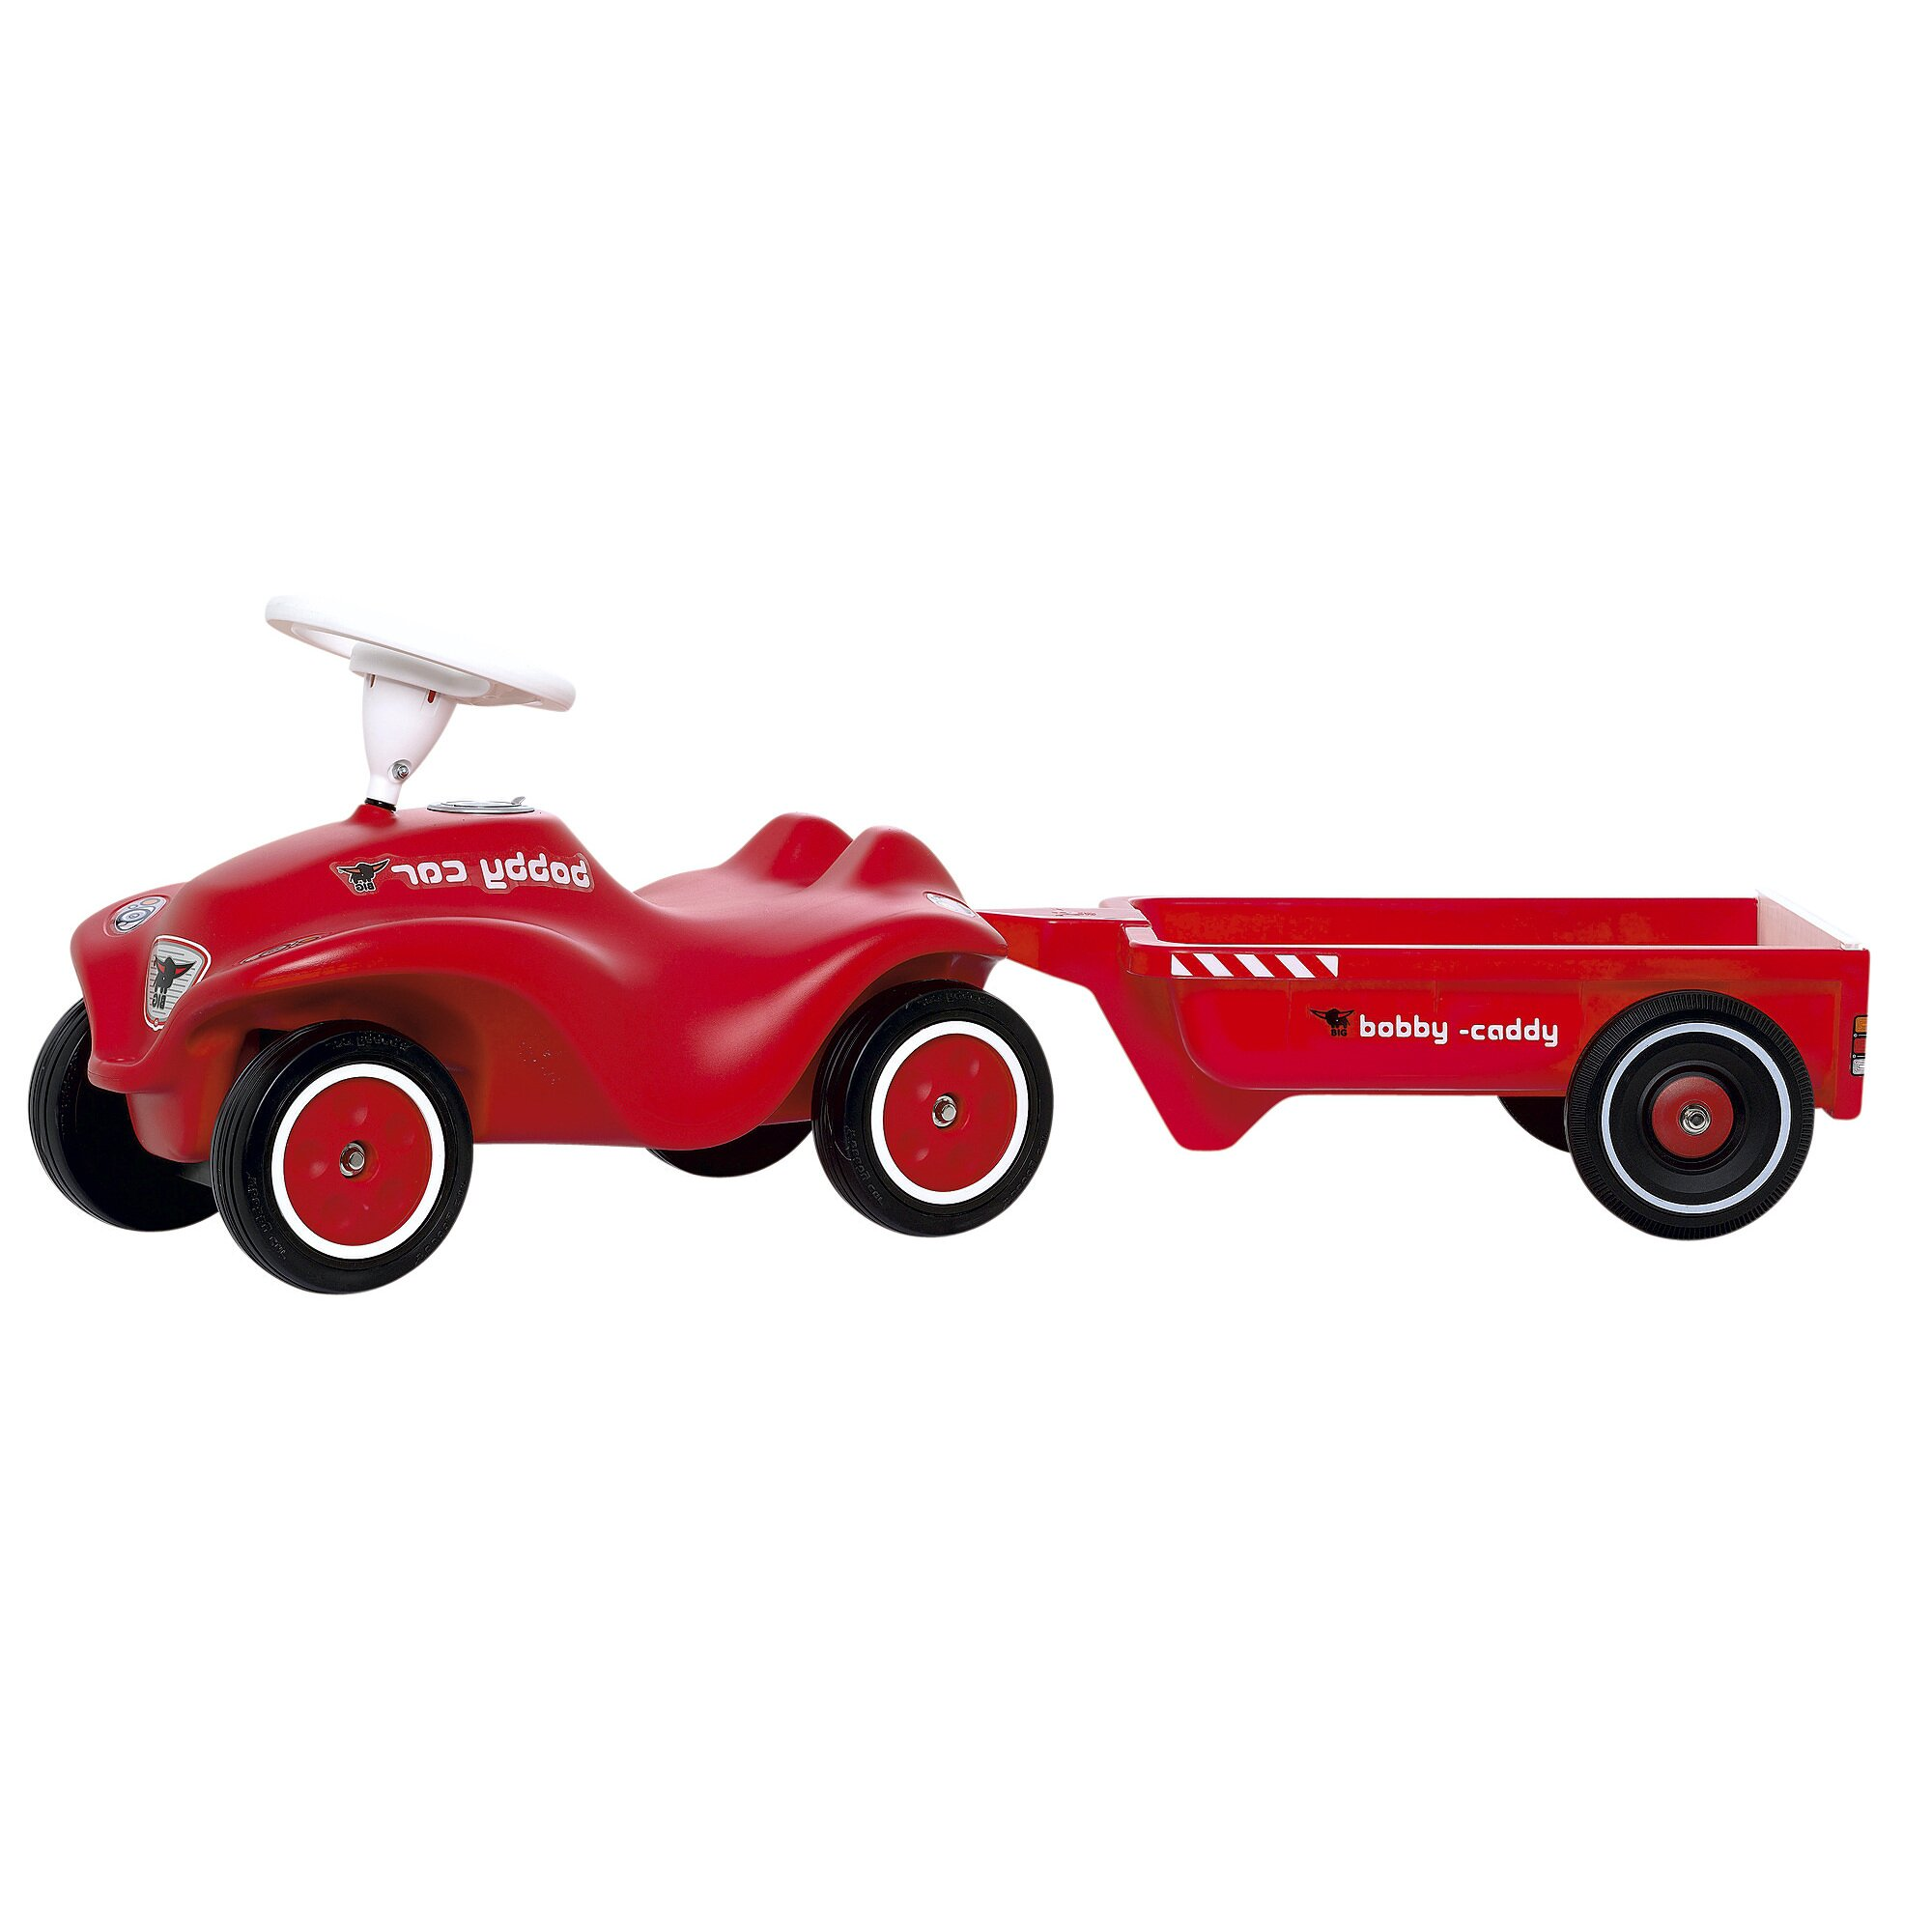 big-bobby-caddy, 15.99 EUR @ babywalz-de